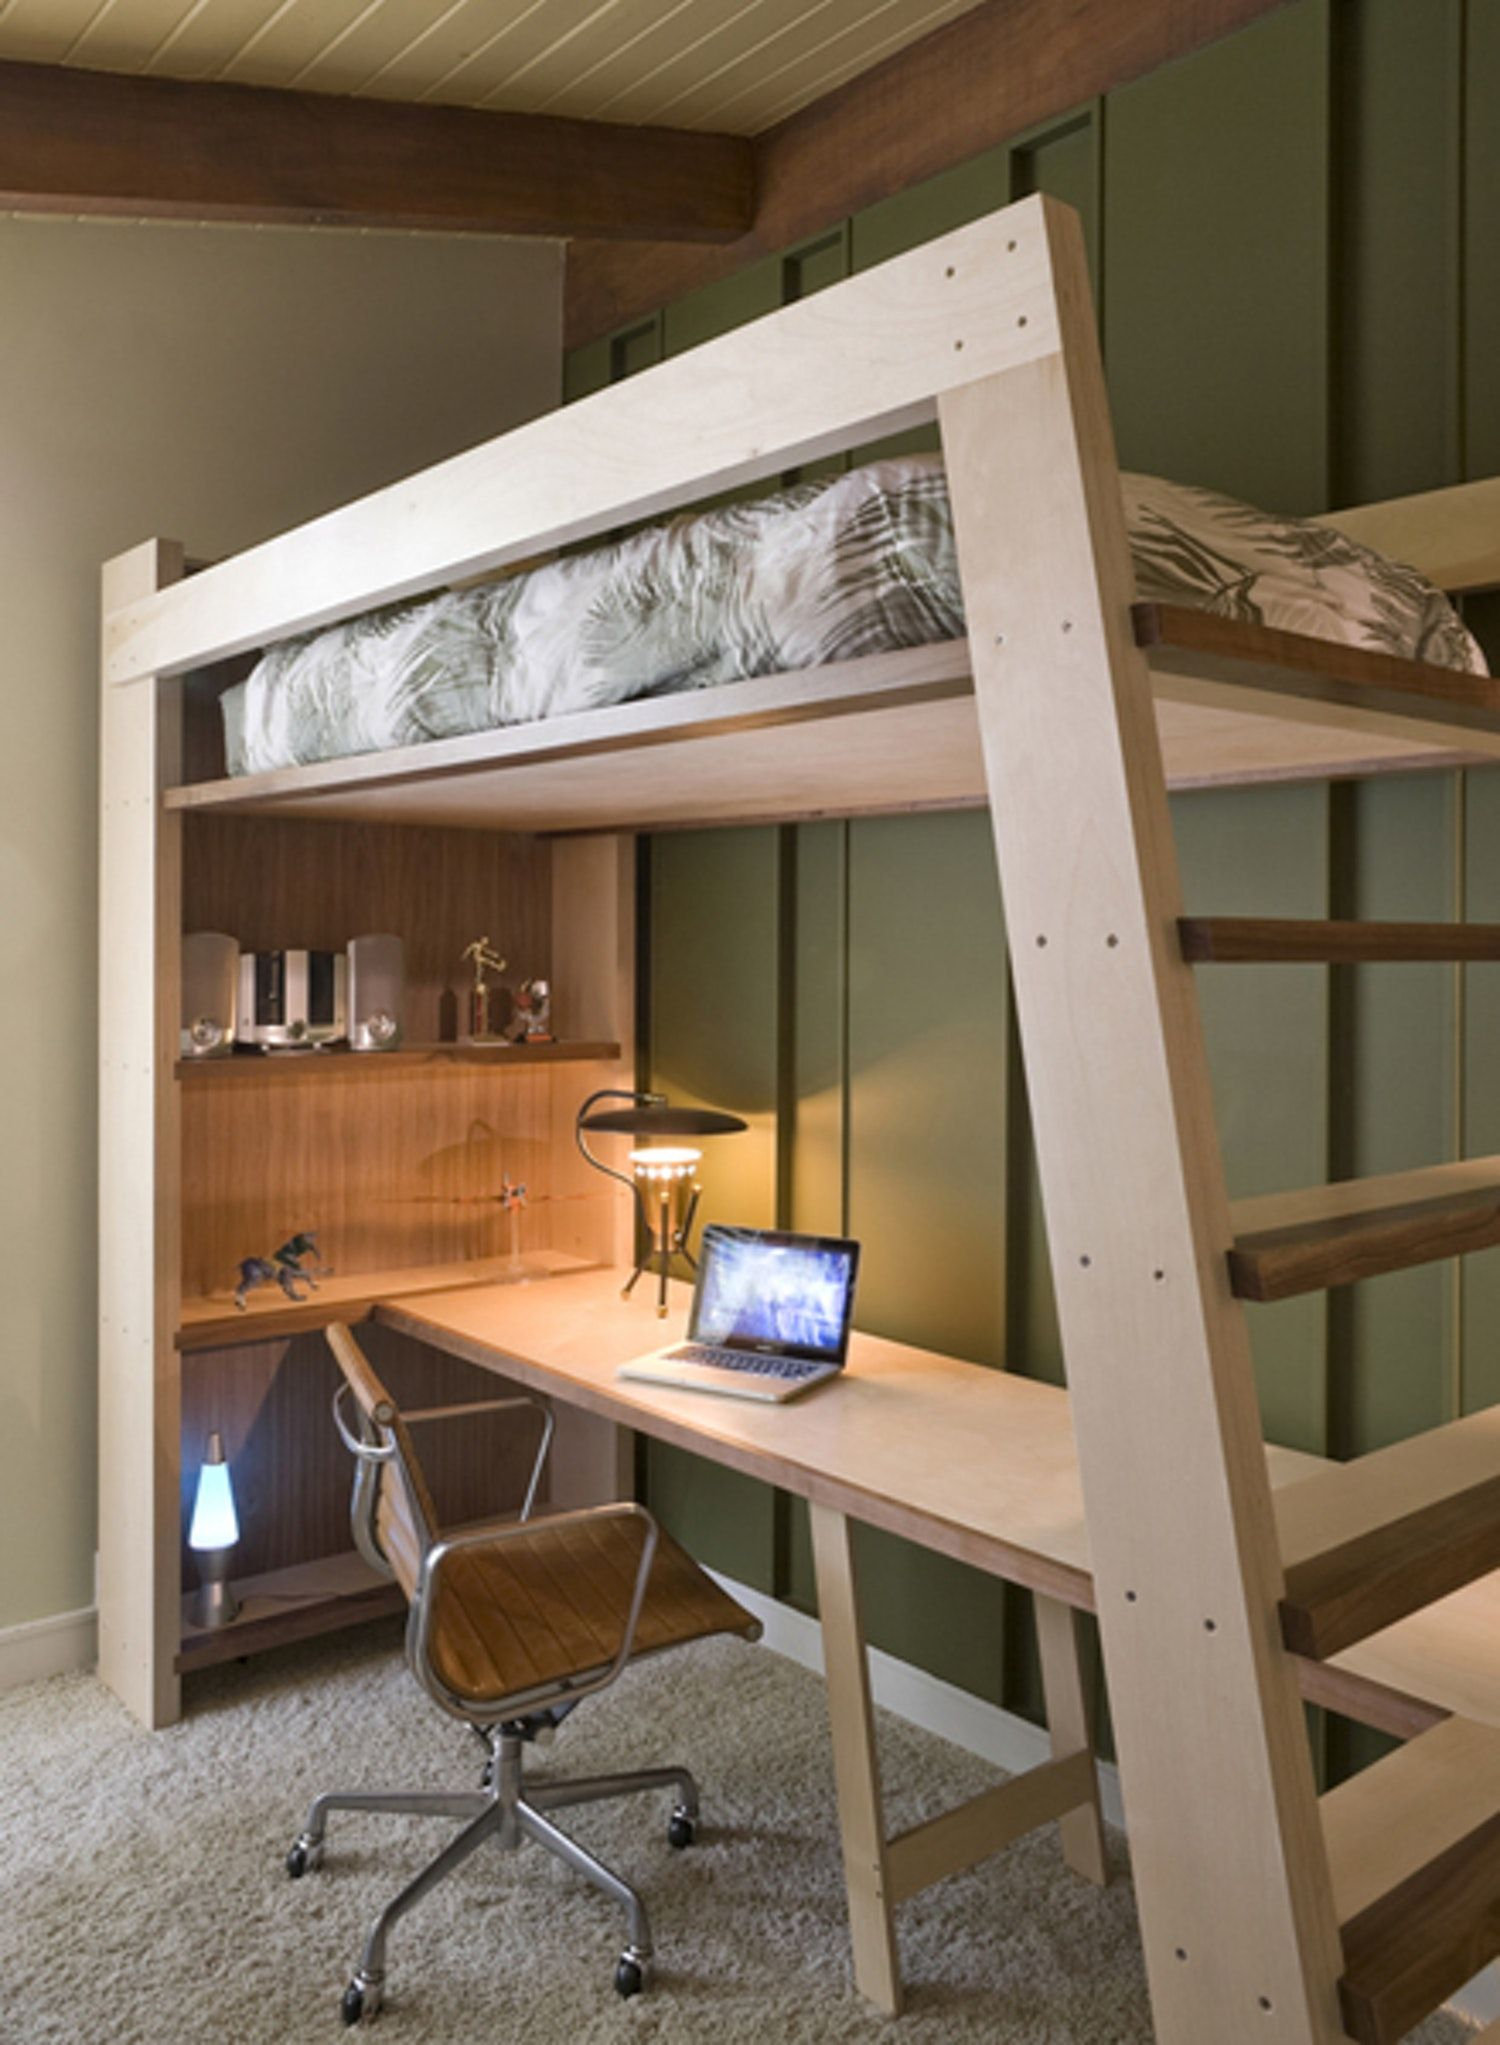 Loft bed plans full size  Handmade Modern A Lofted Bed You Canut Find In Stores  WOOD You